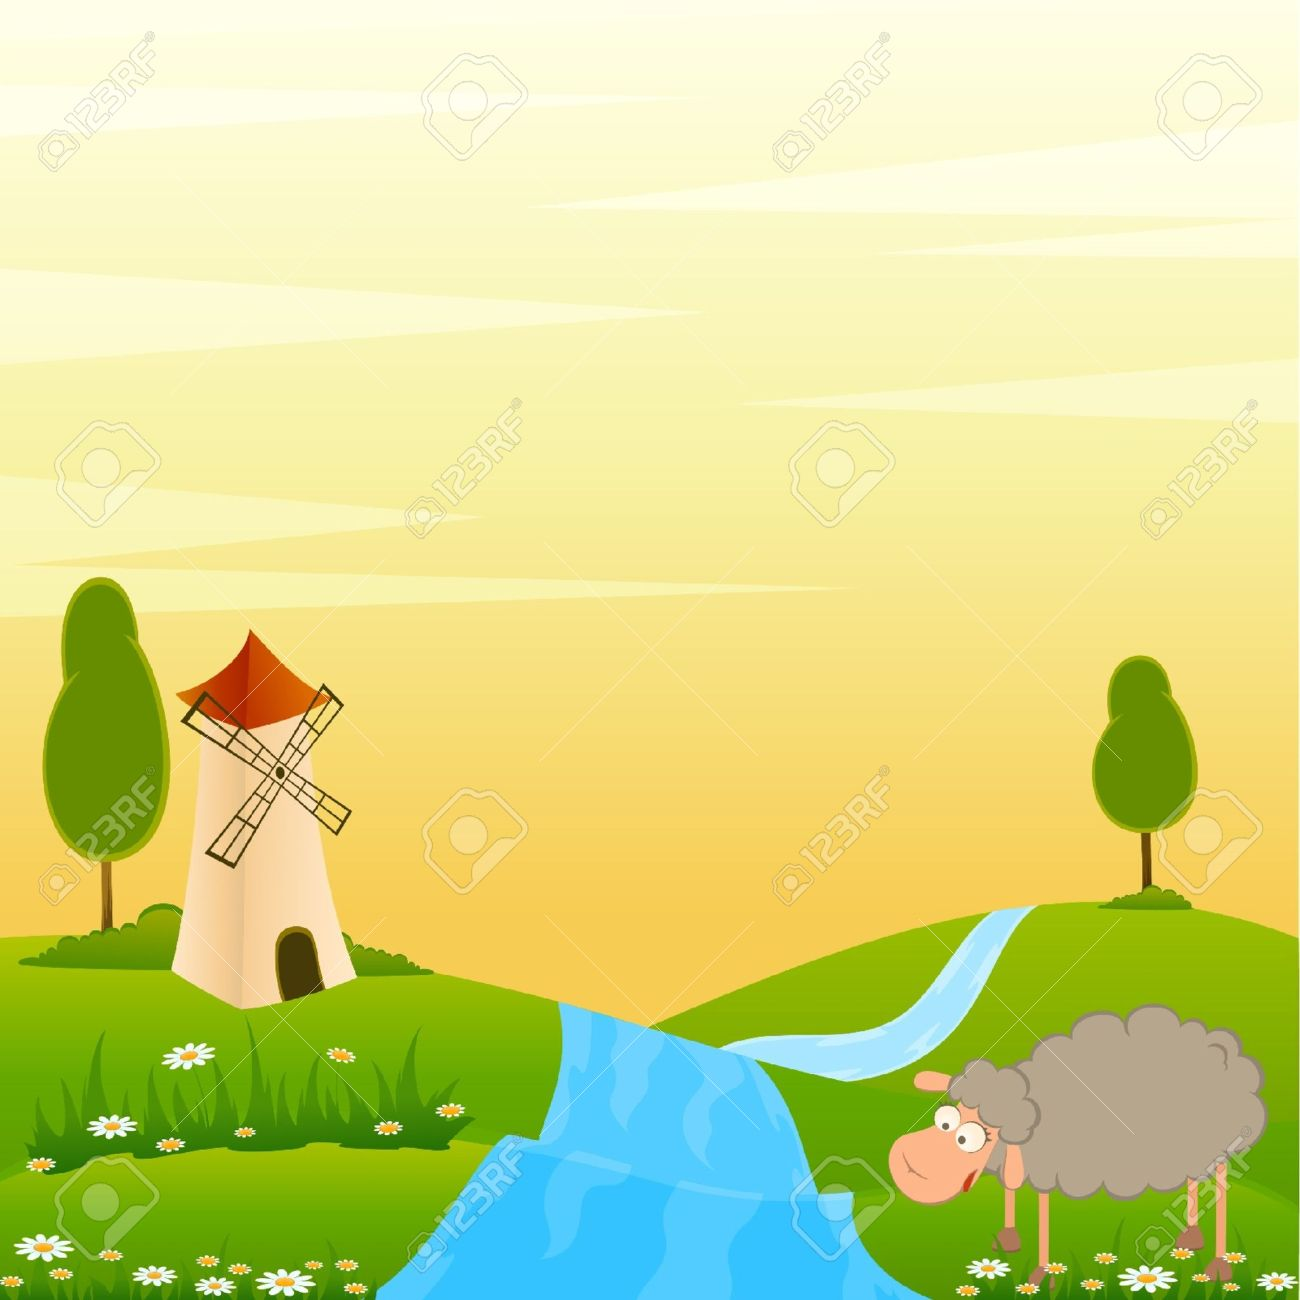 Vector Landscape background with house and cartoon sheep Stock Vector - 9876732